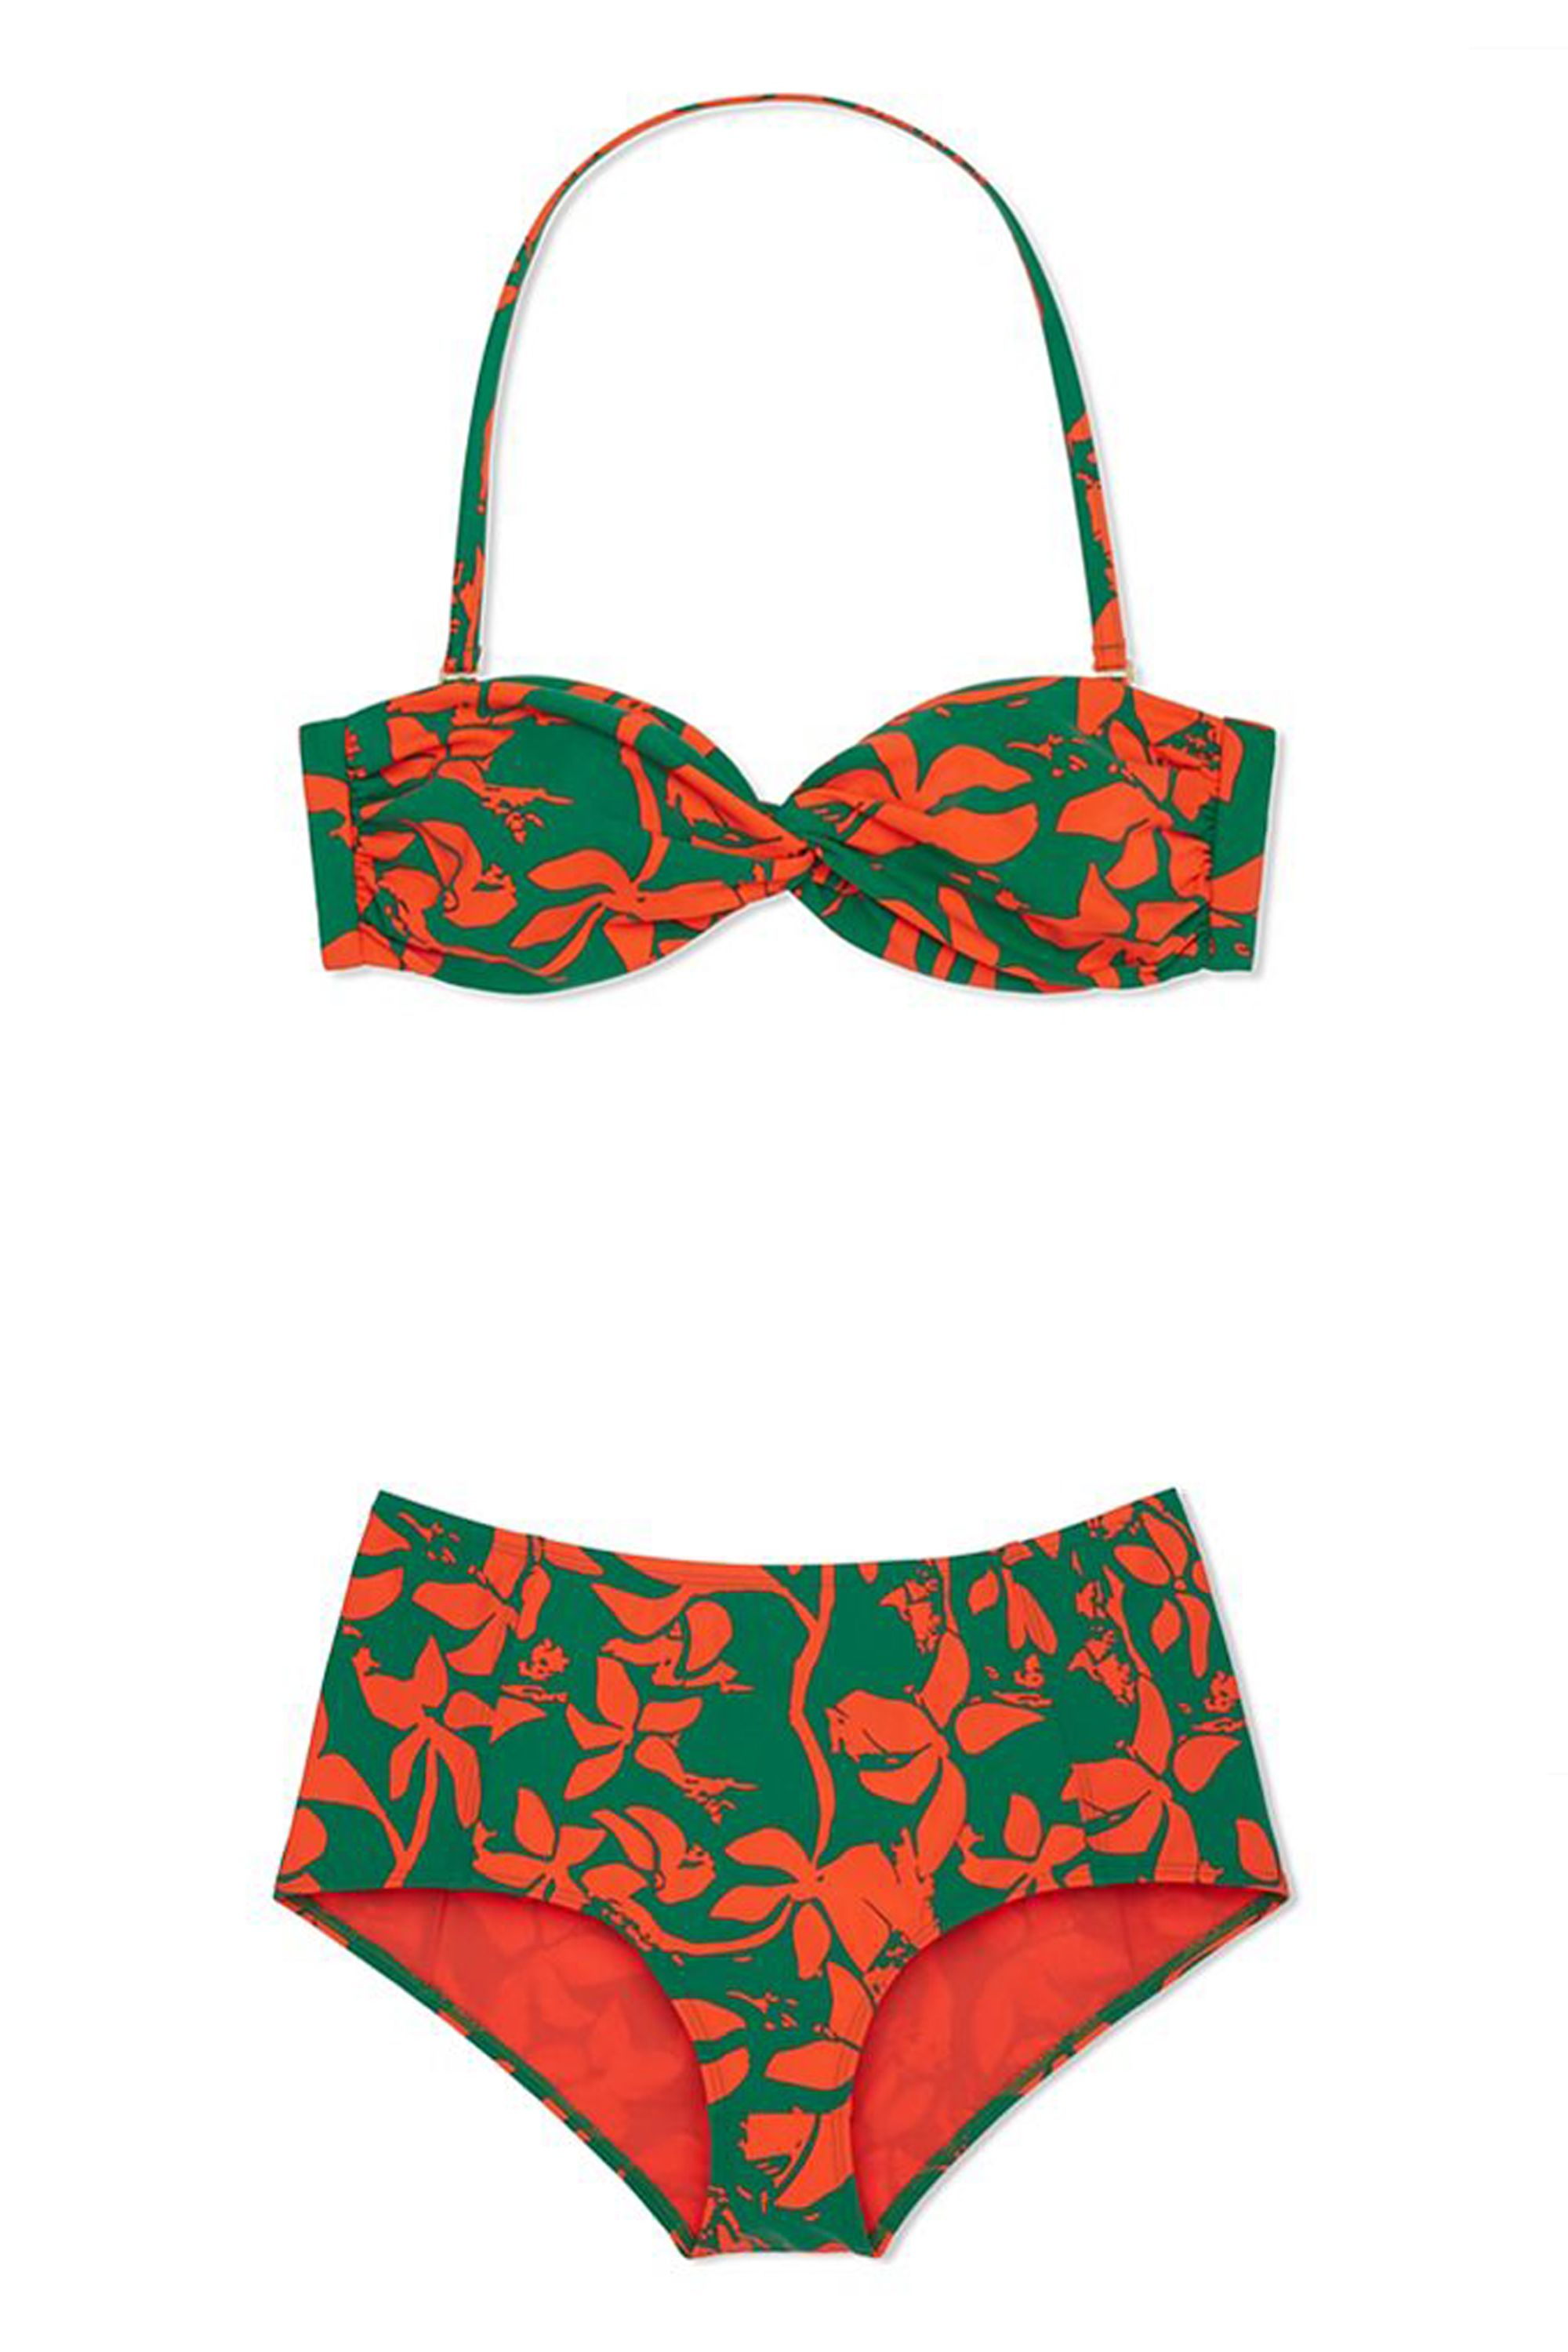 a450d02f9e 23 High-Waisted Bikinis Because You're Probably Ready for a Vacation. Tory  Burch Minorca Bandeau, $115; toryburch.com Tory Burch Minorca High-Waisted  Bottom ...